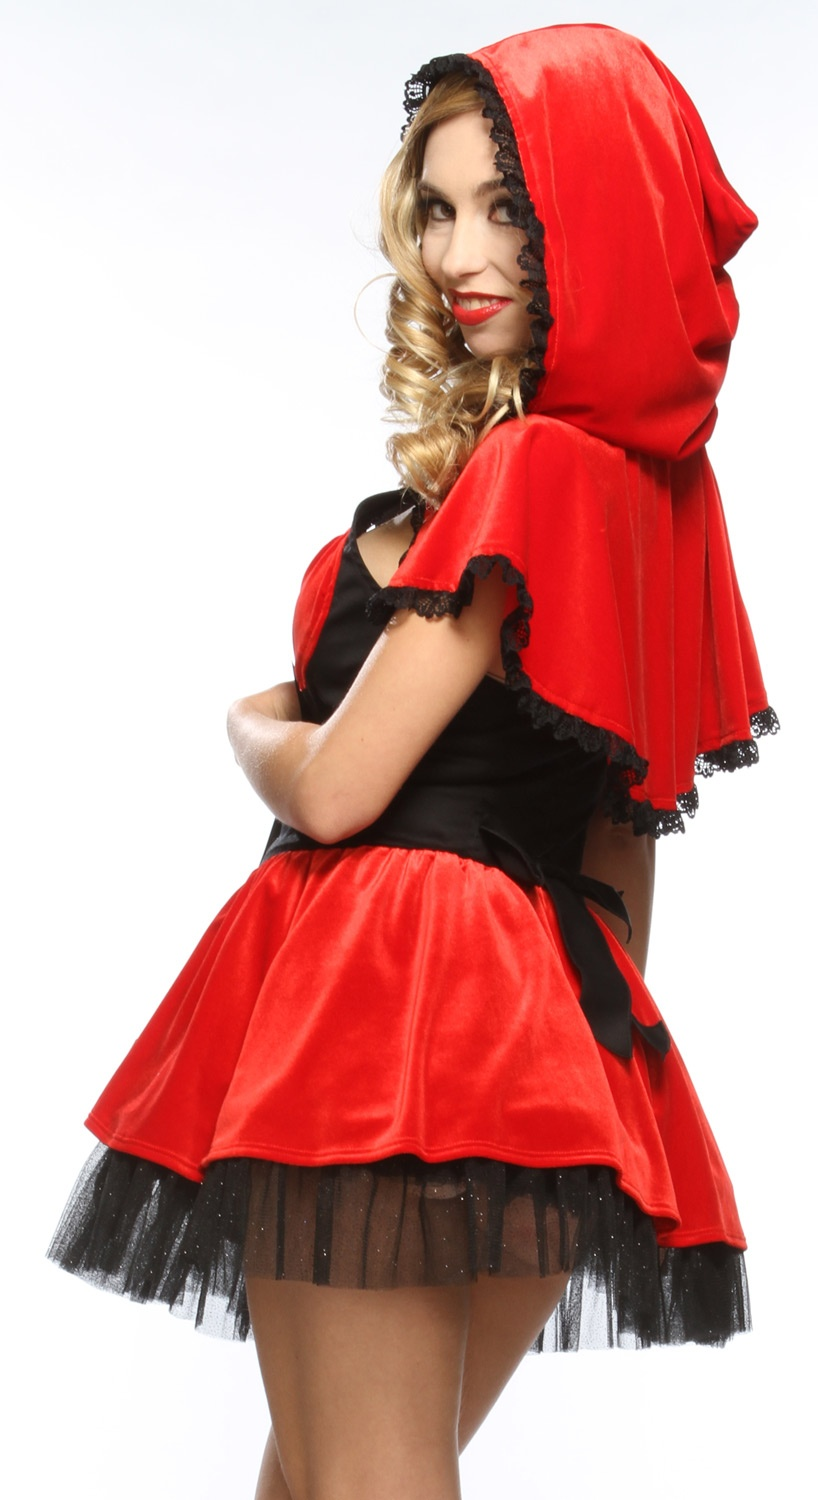 Sexy red riding hood costume picture 23